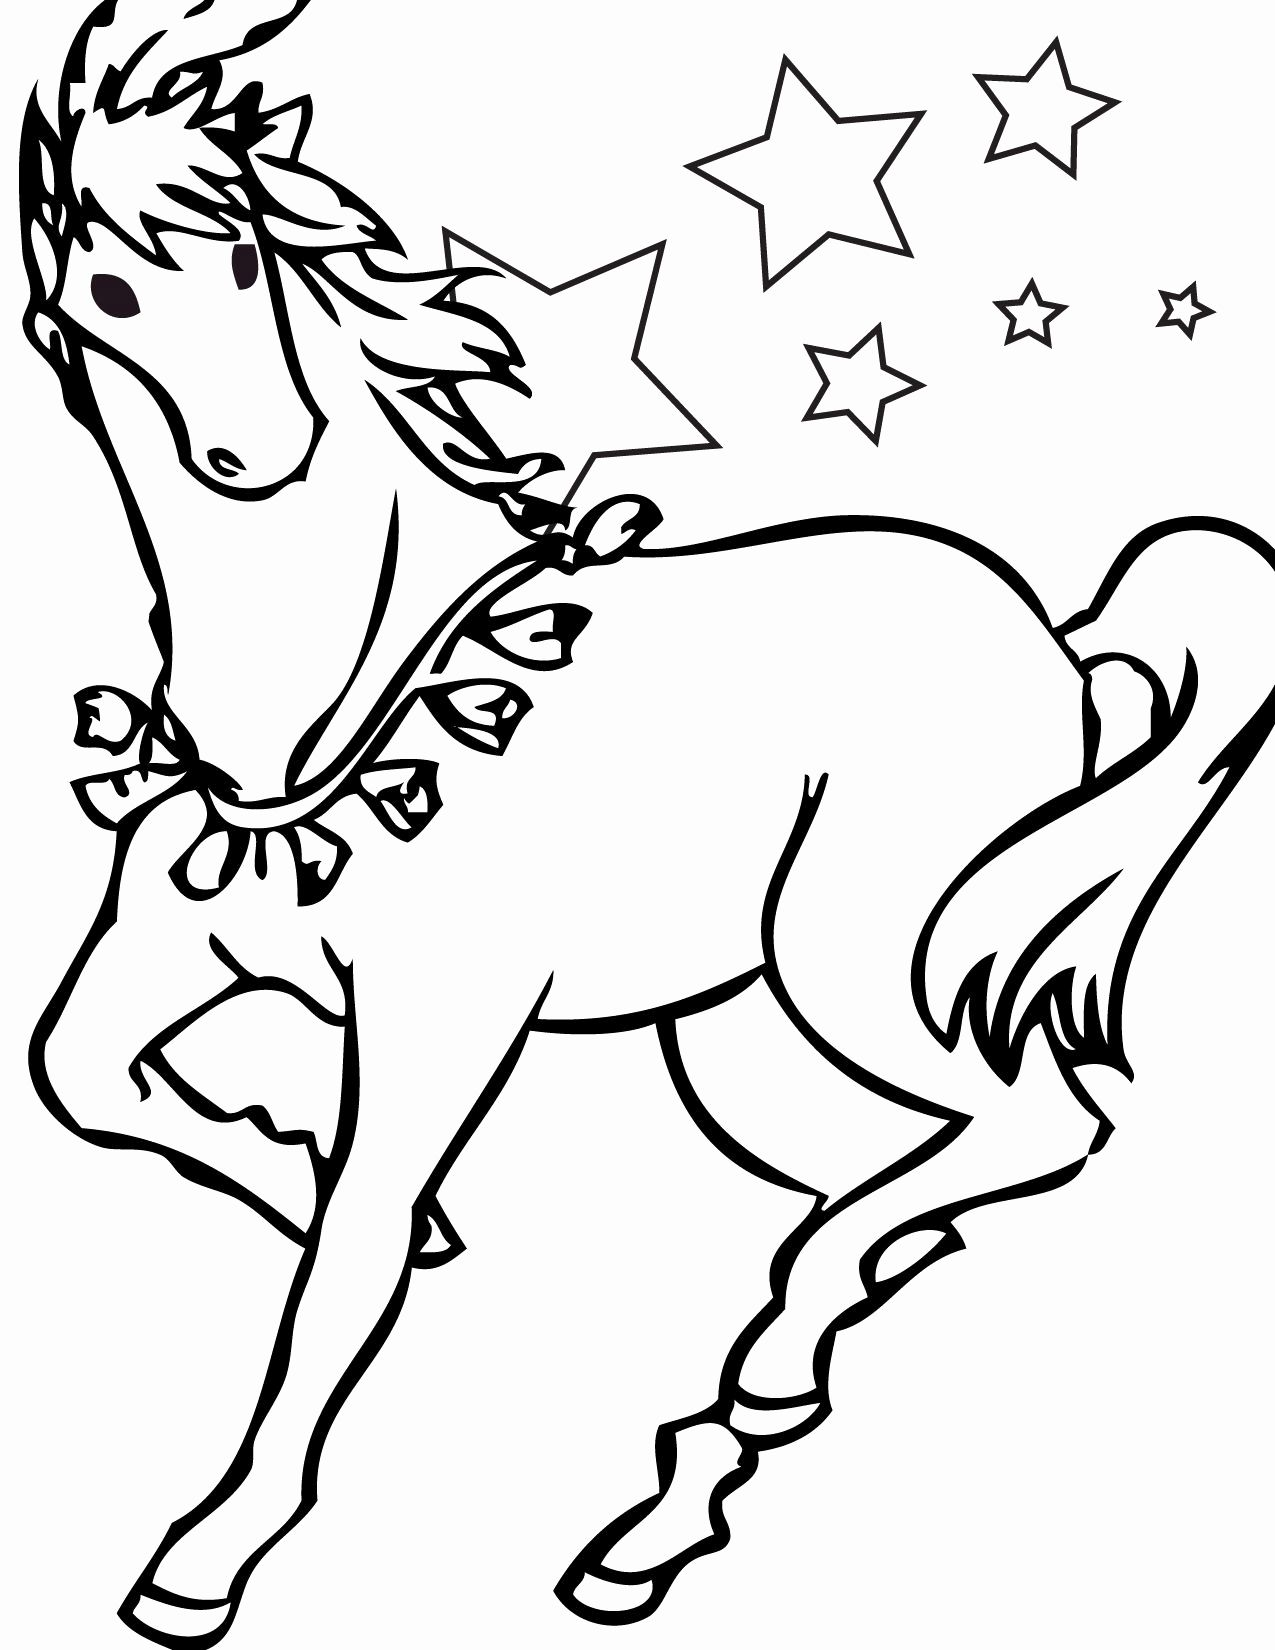 Rocking Horse Coloring Pages For Kids Horse Coloring Pages Horse Coloring Books Horse Coloring